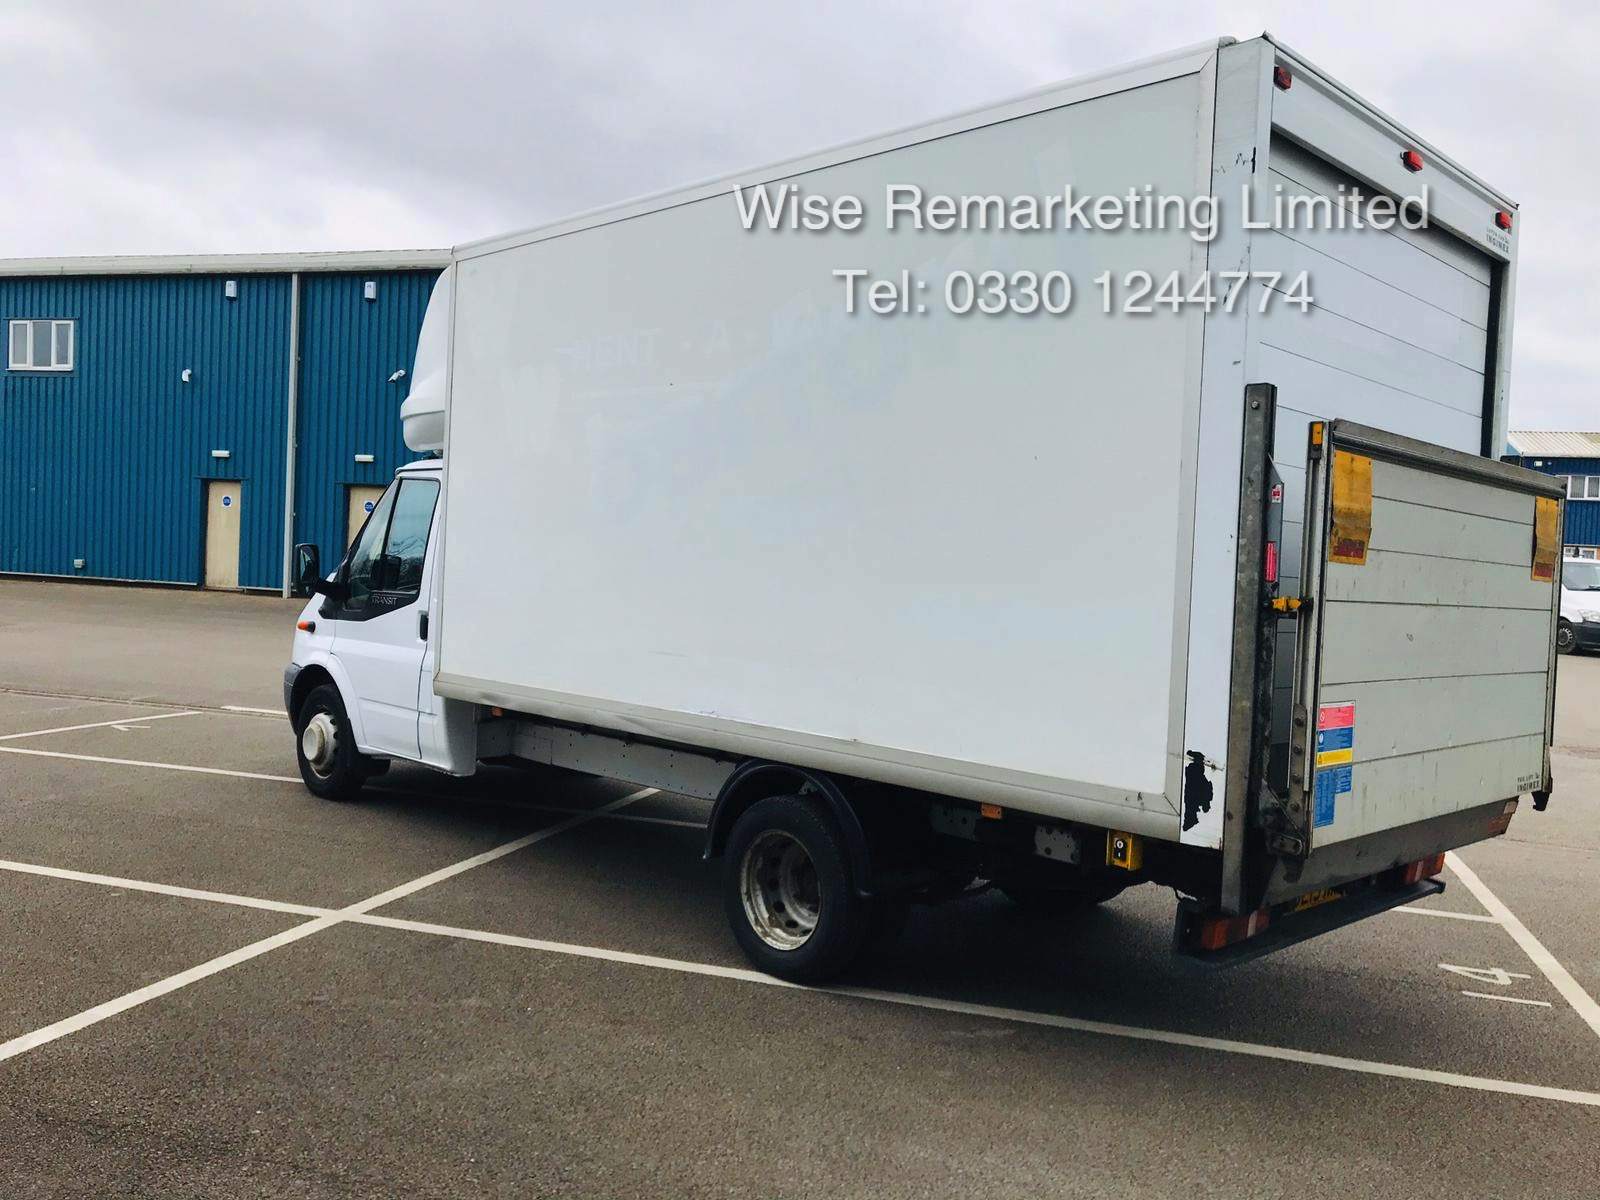 Ford Transit T350 2.2 TDCI Luton Van - 6 Speed - Tail Lift - 2013 13 Reg - SAVE 20% NO VAT - Image 3 of 23